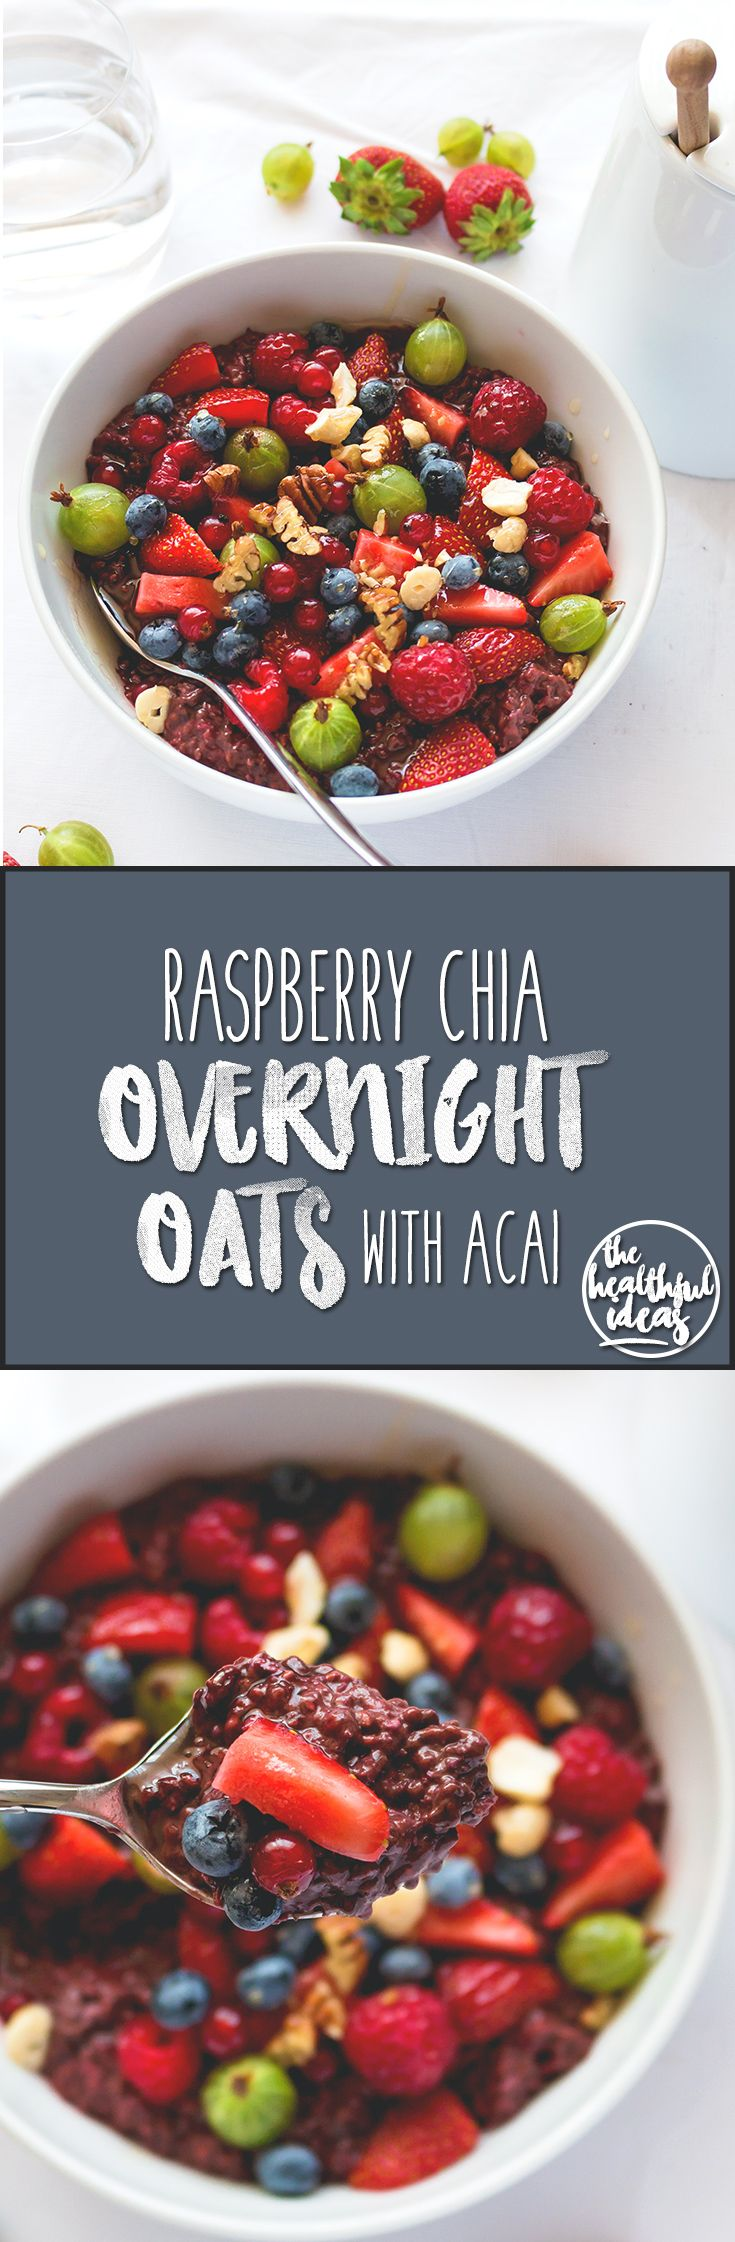 Raspberry Chia Overnight Oats with Acai - the best breakfast to start your day right. Full of raspberries, cacao, acai, and chia seeds. YUM! We love this recipe!| thehealthfulideas.com